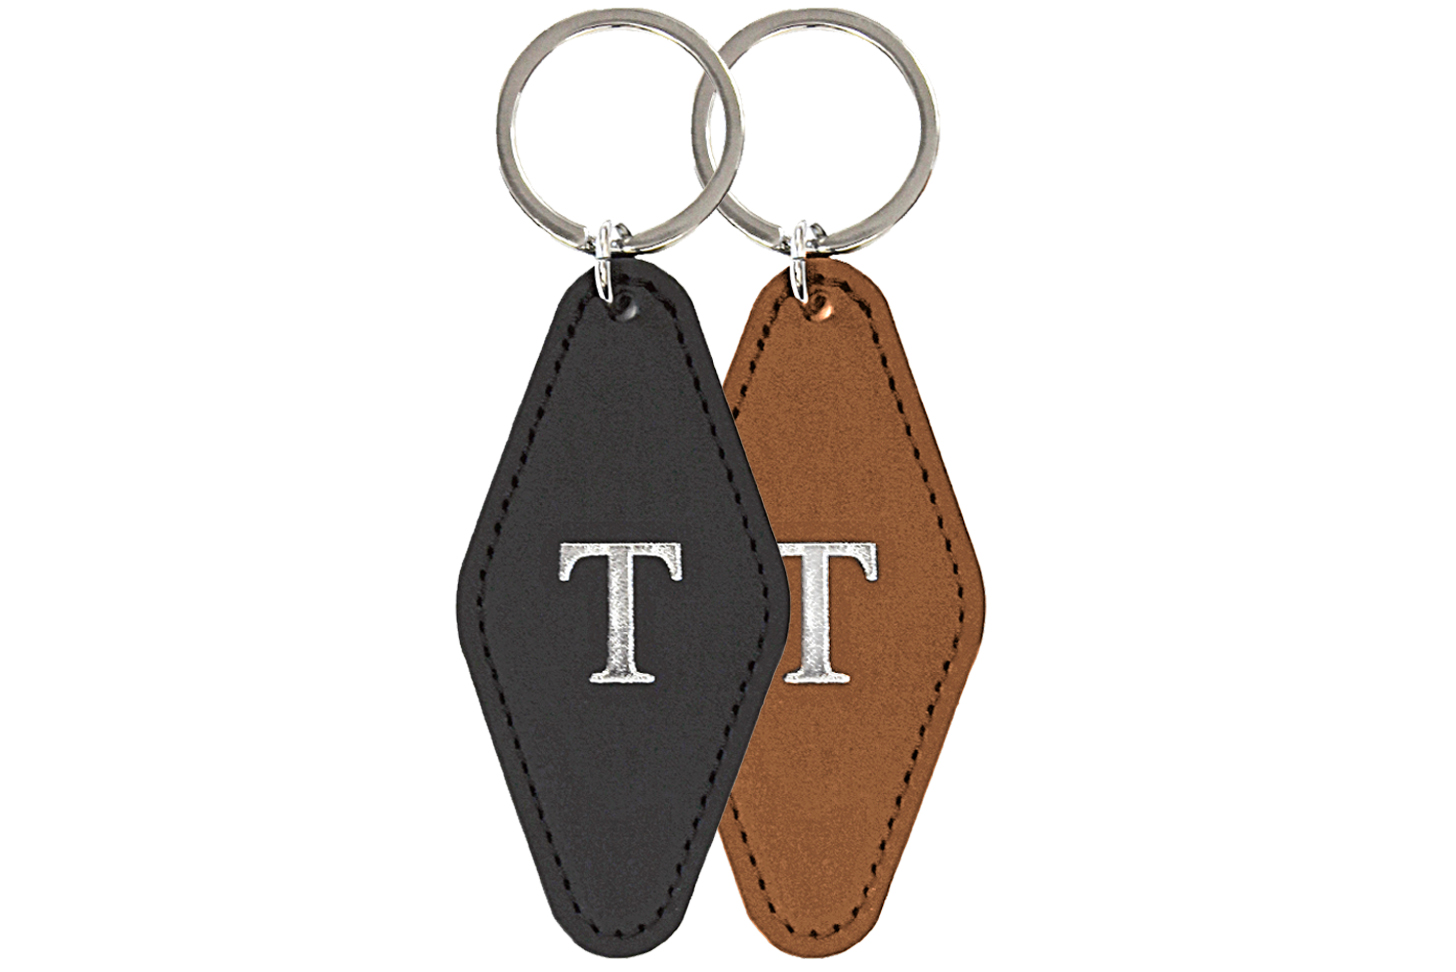 Keychain in black and tan leather